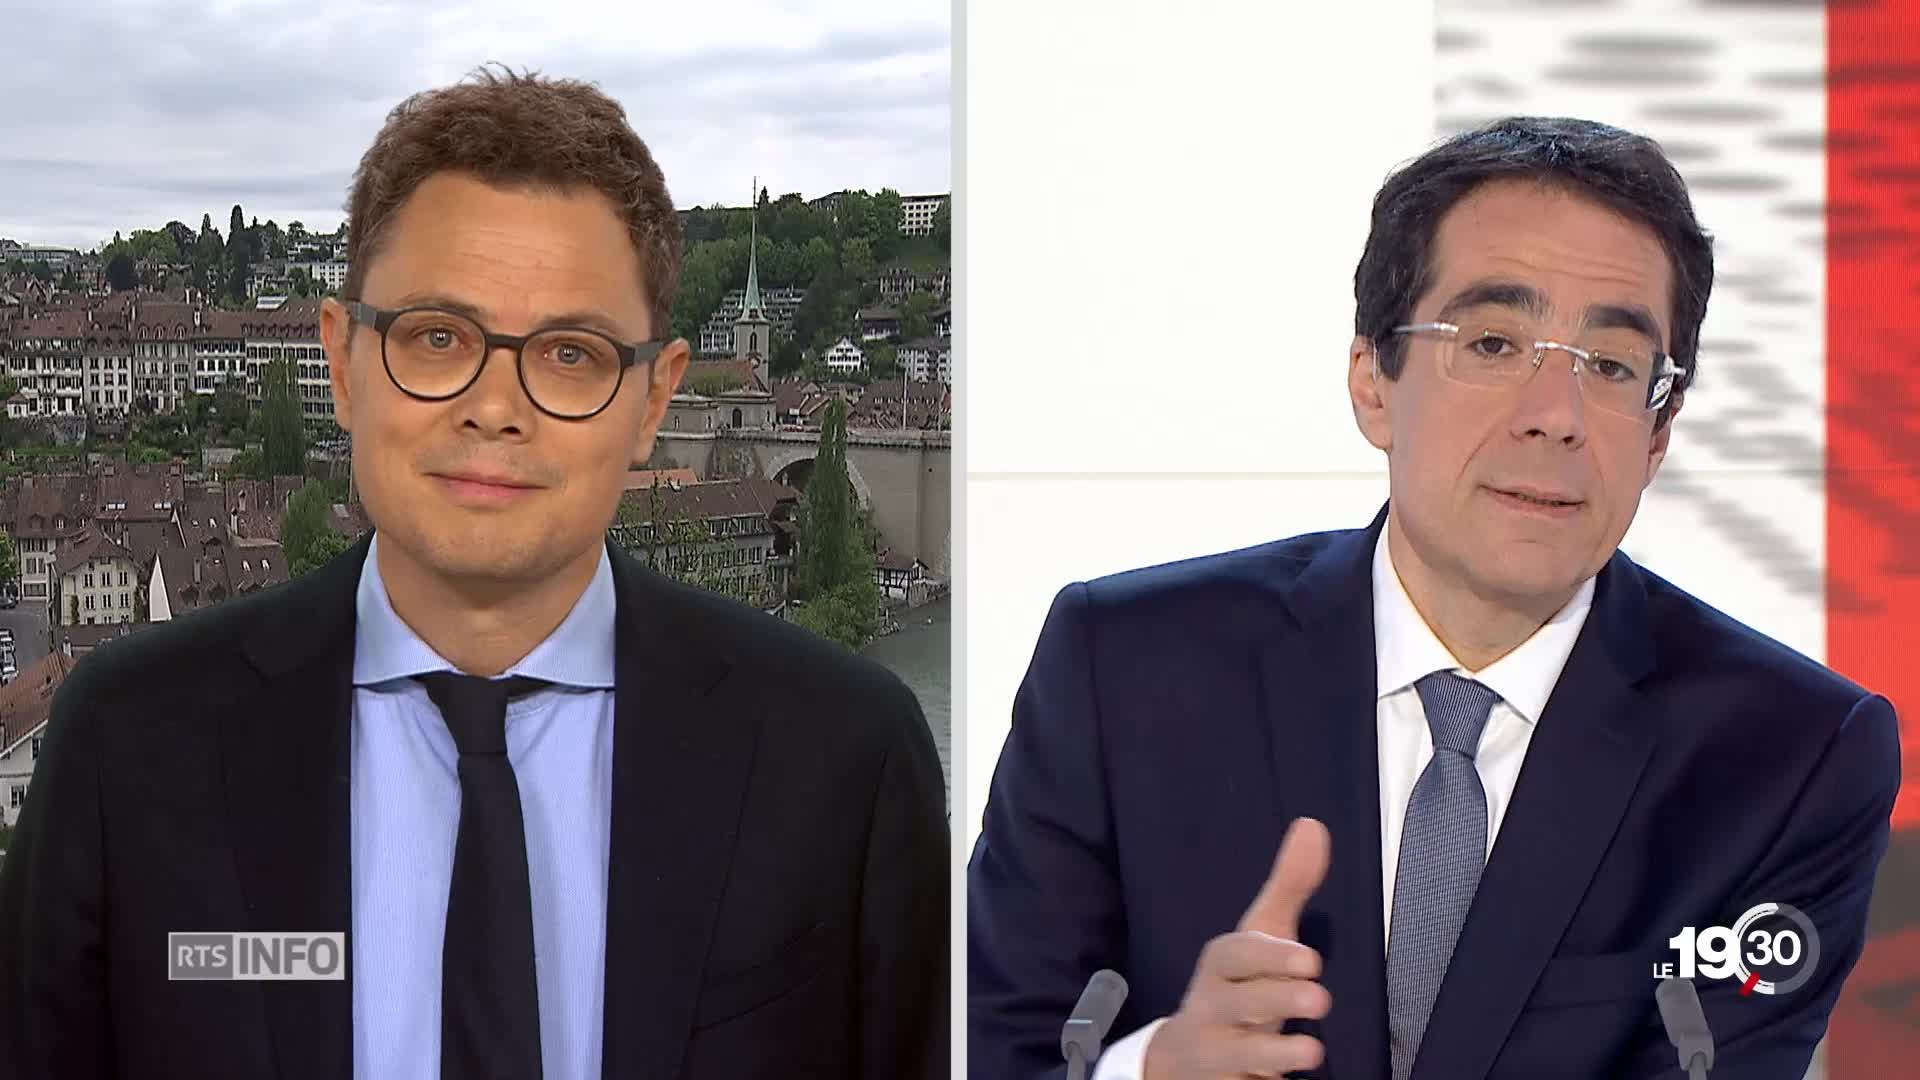 Christoph Blocher - Media: analyse de Pierre Nebel, depuis Berne